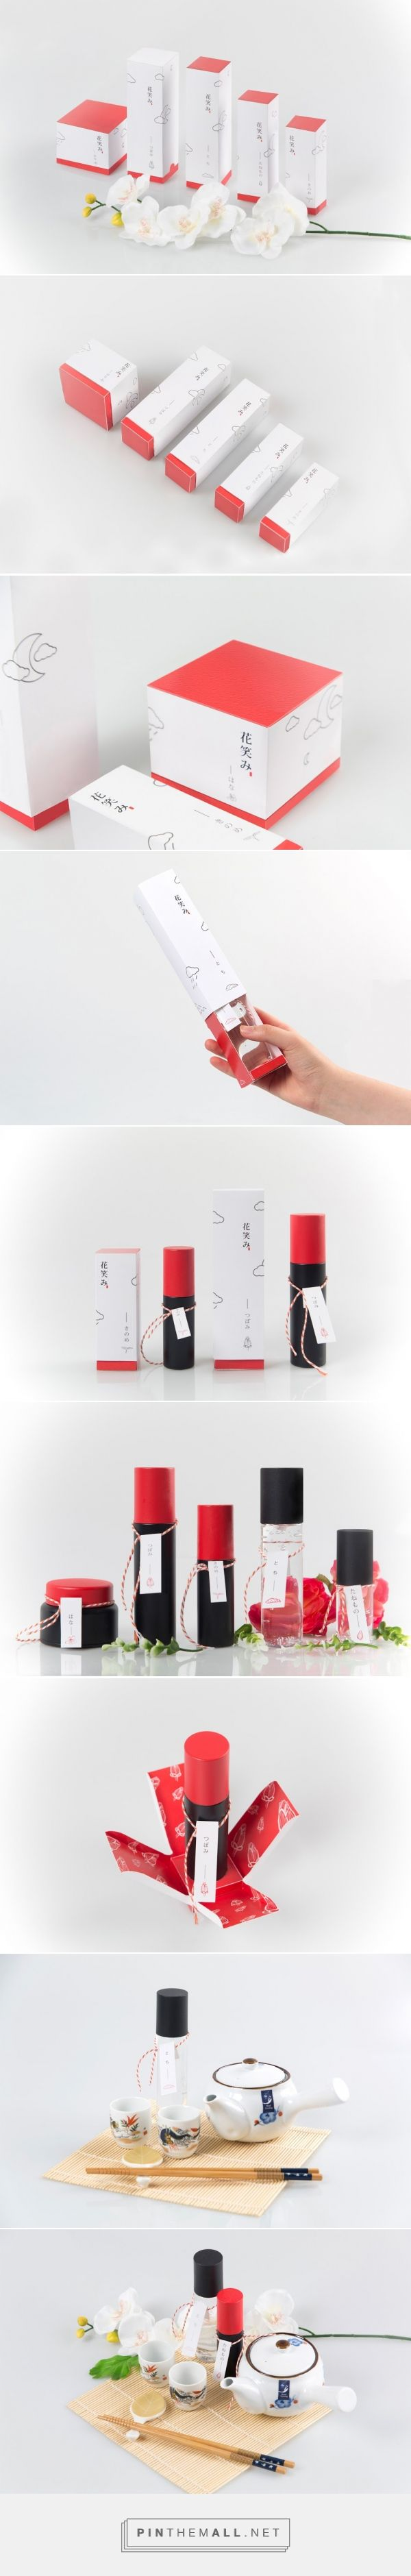 Hanaemi Cosmetics packaging design concept by Hyun Yun, HaeChan Jung, YeonHee Choi (Korea) - http://www.packagingoftheworld.com/2016/06/hanaemi-cosmetics-student-project.html 단상자 디자인